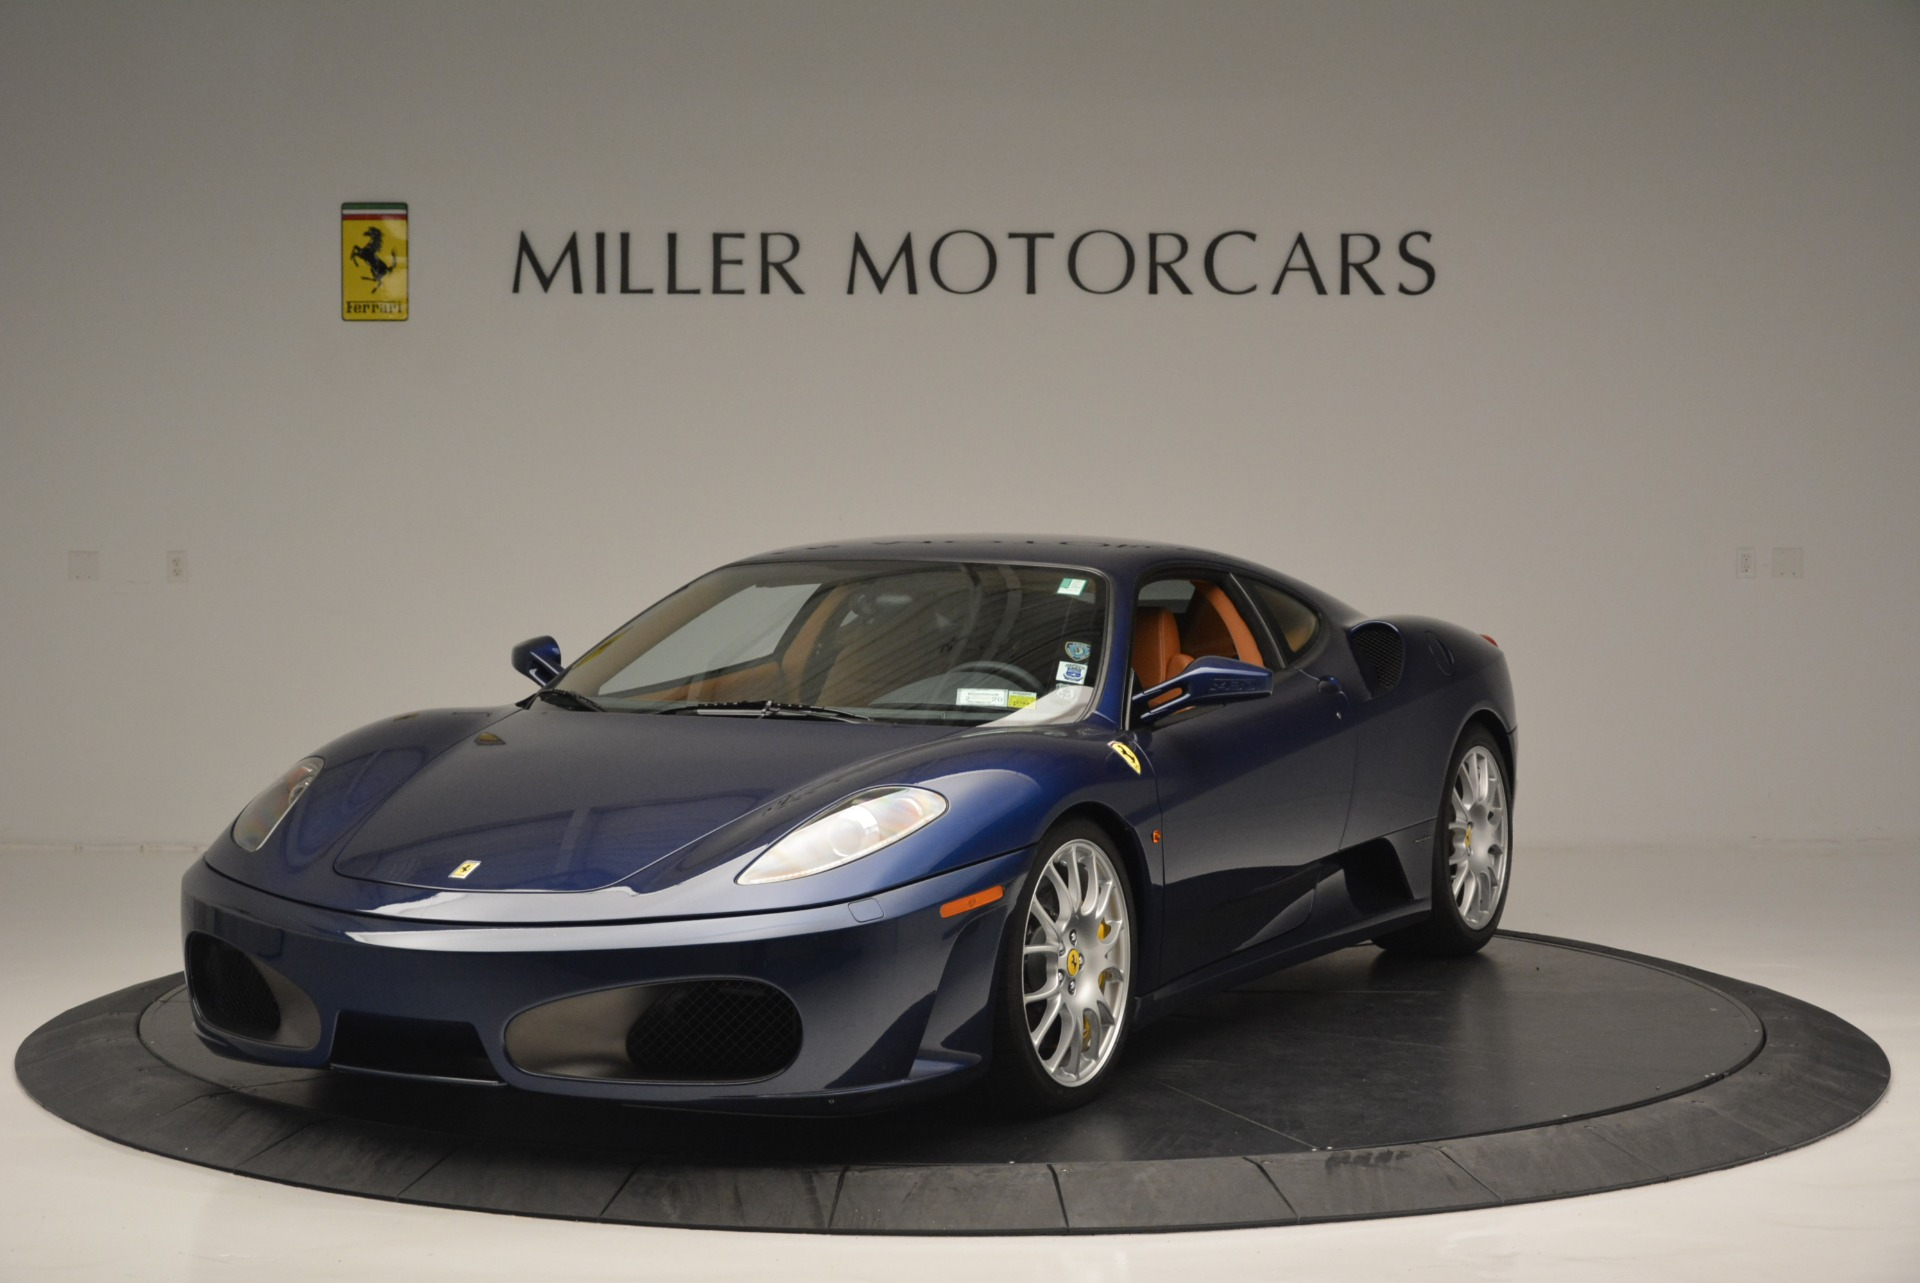 Used 2009 Ferrari F430 6-Speed Manual for sale Sold at Alfa Romeo of Greenwich in Greenwich CT 06830 1